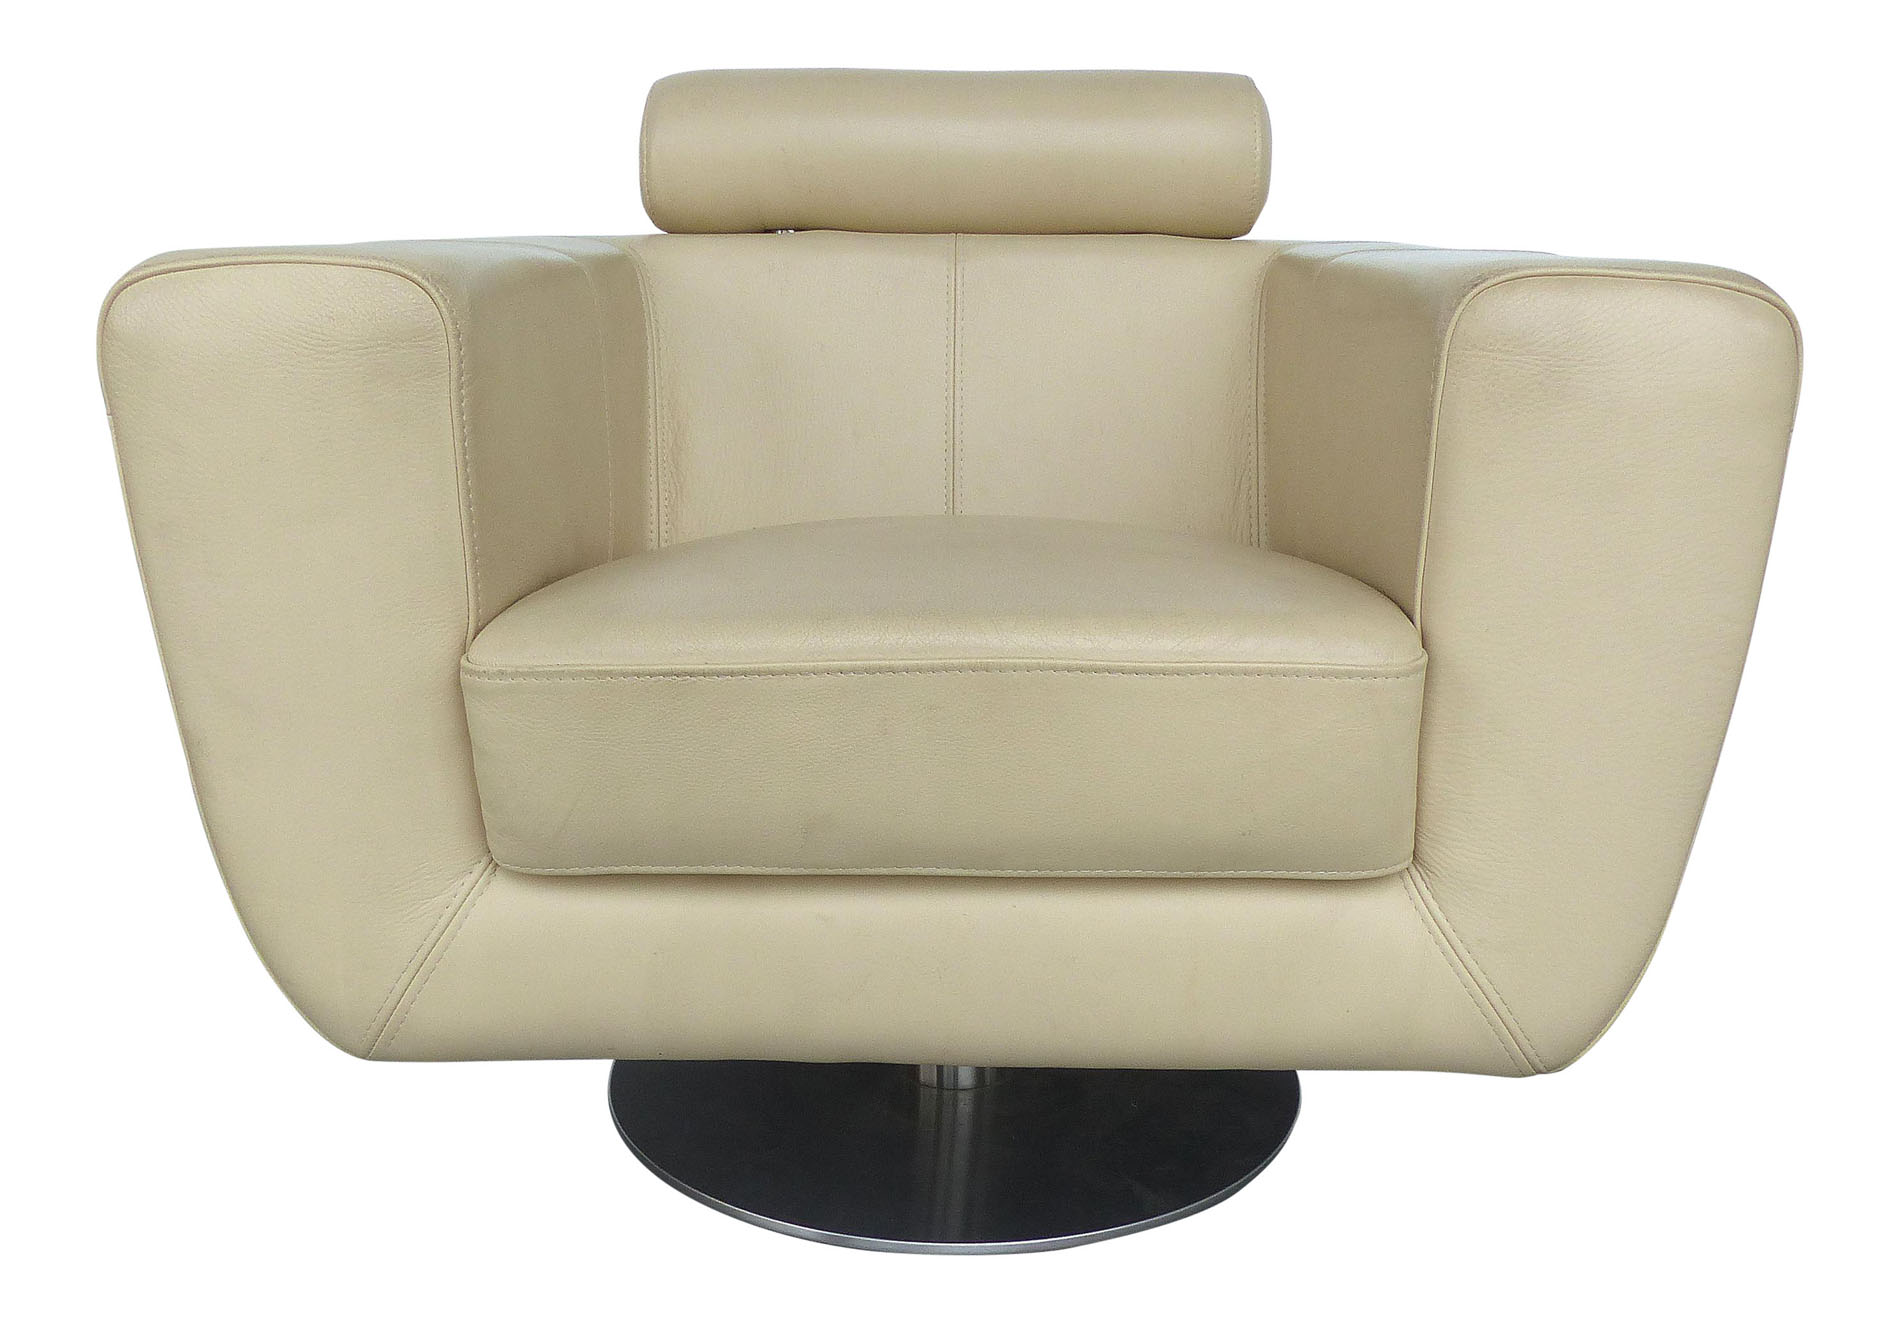 Modern beige leather swivel club chair modernism for Swivel club chair leather